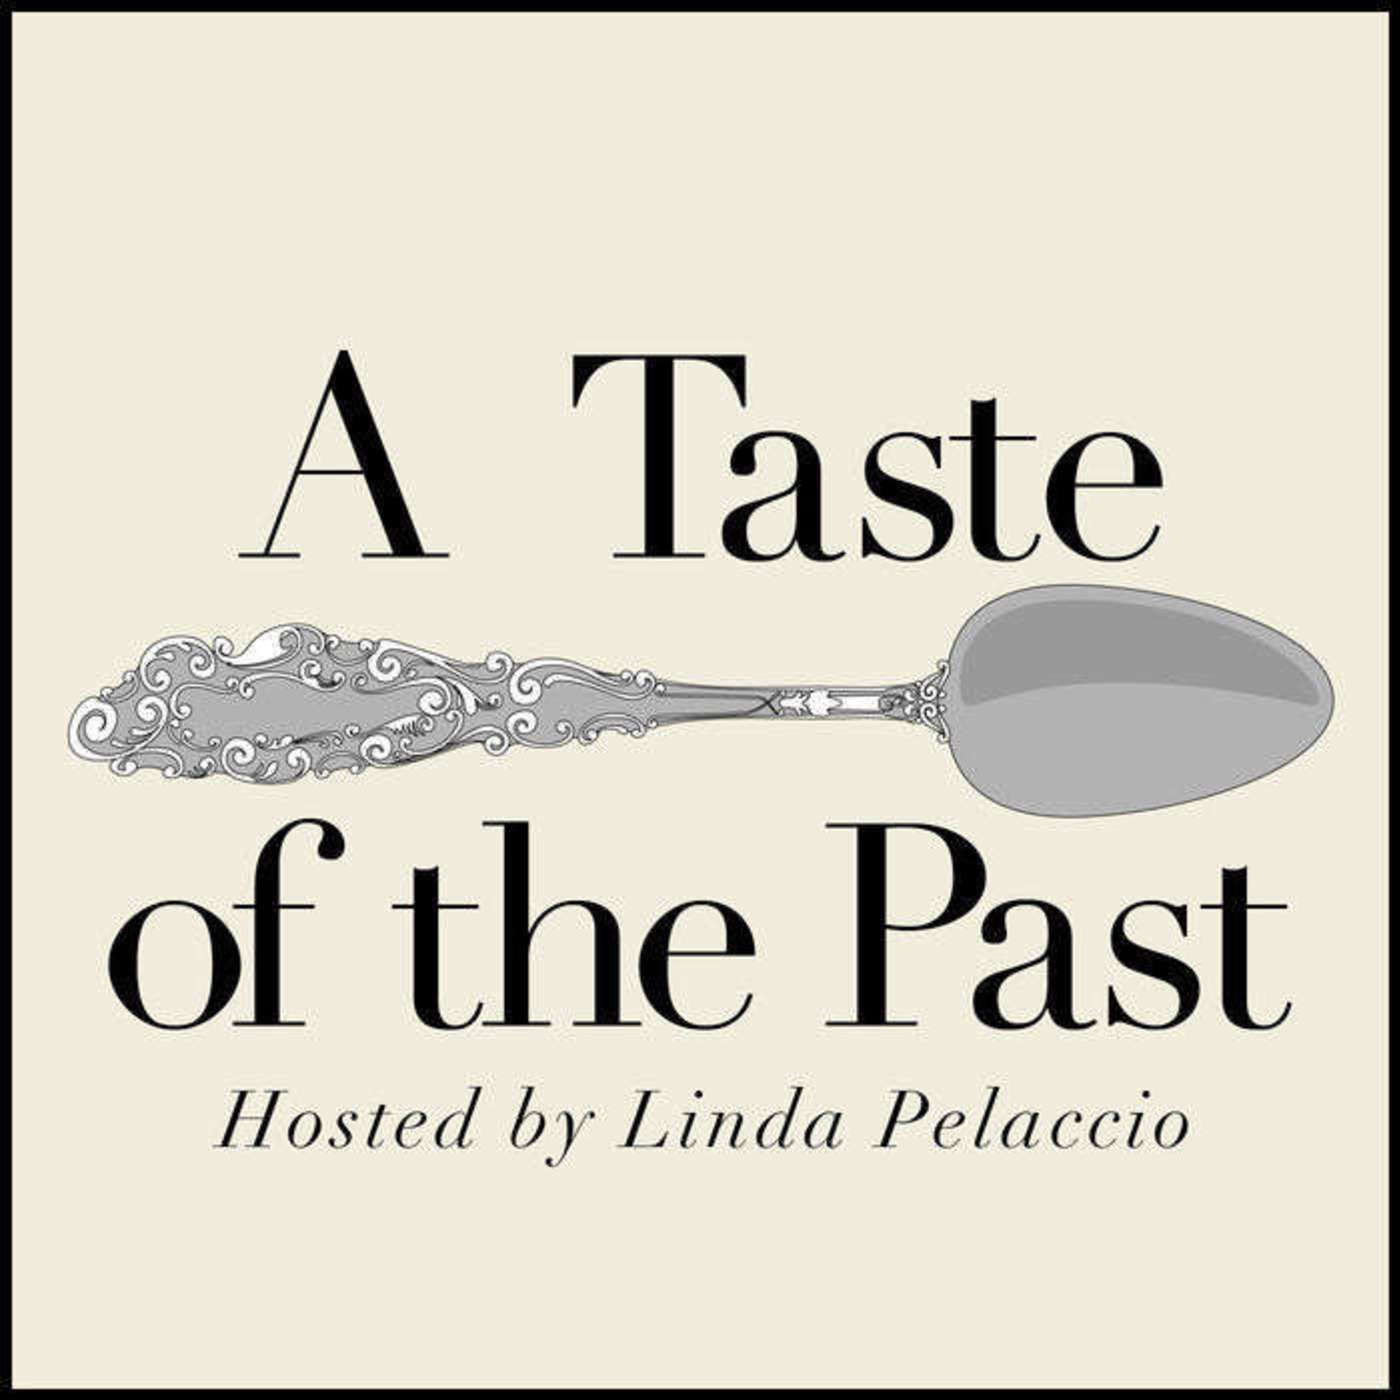 Episode 213: What's in a Name: Chinese Dishes